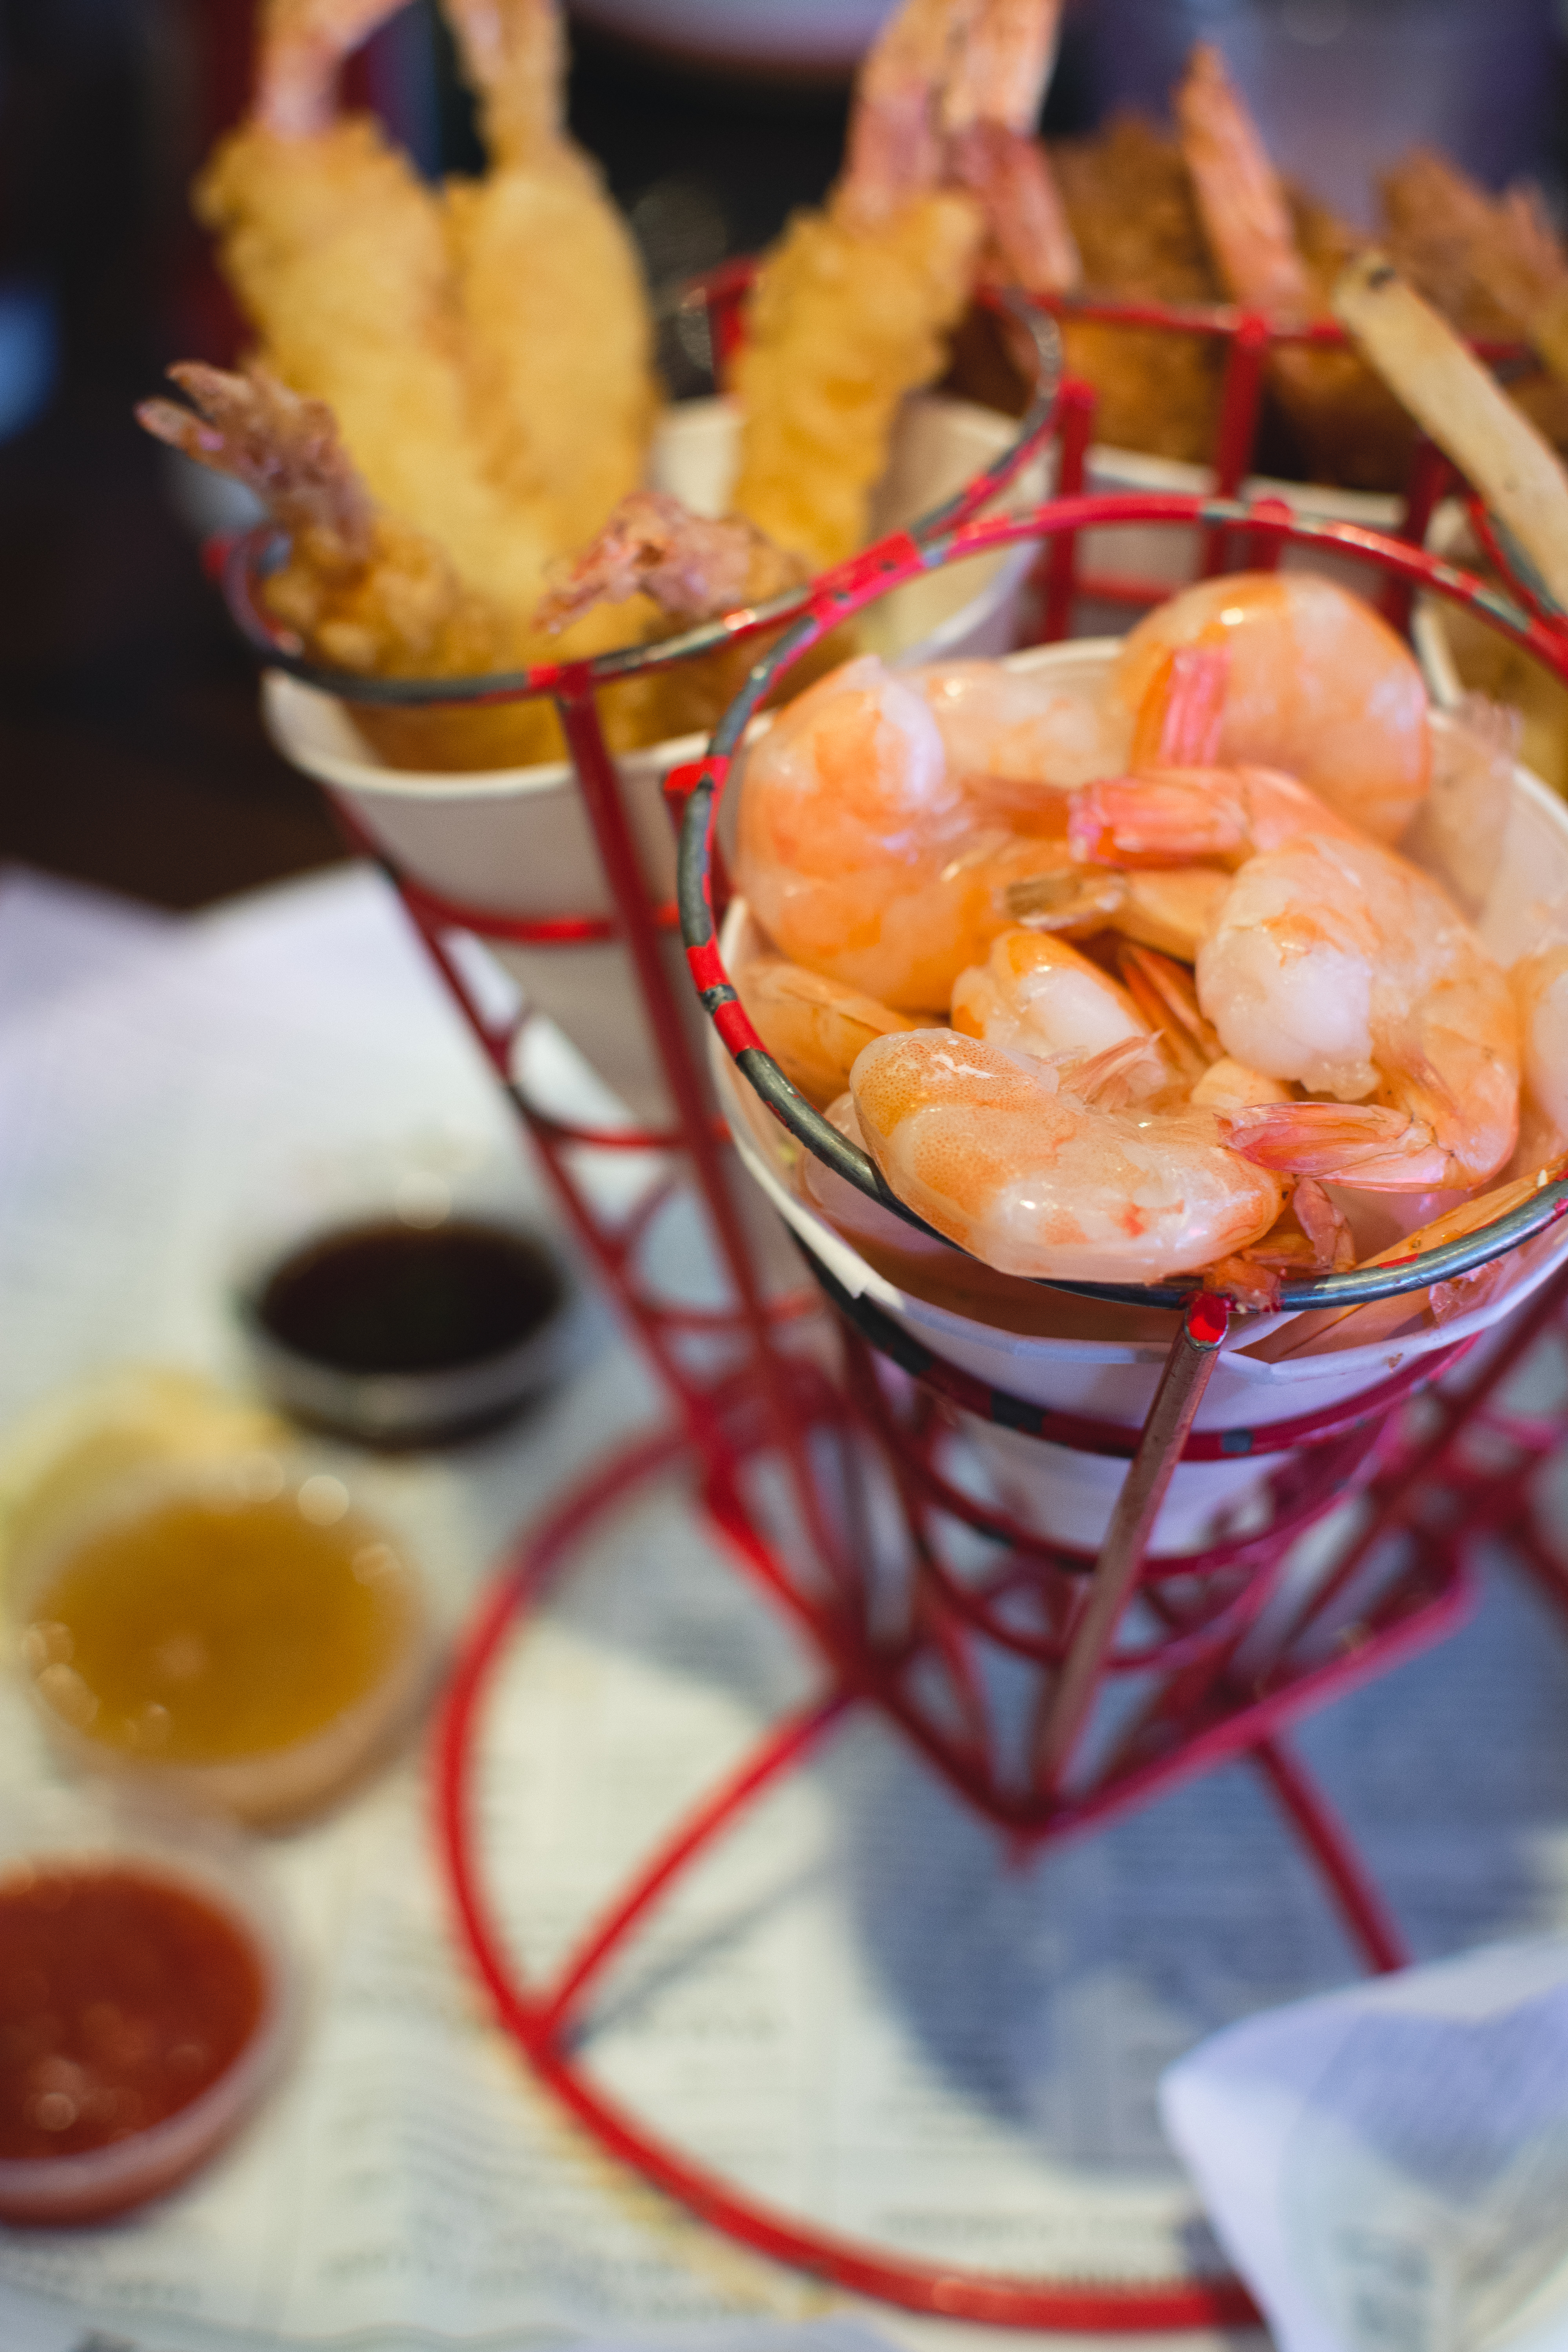 Shrimp dishes in Bubba Gump restaurant